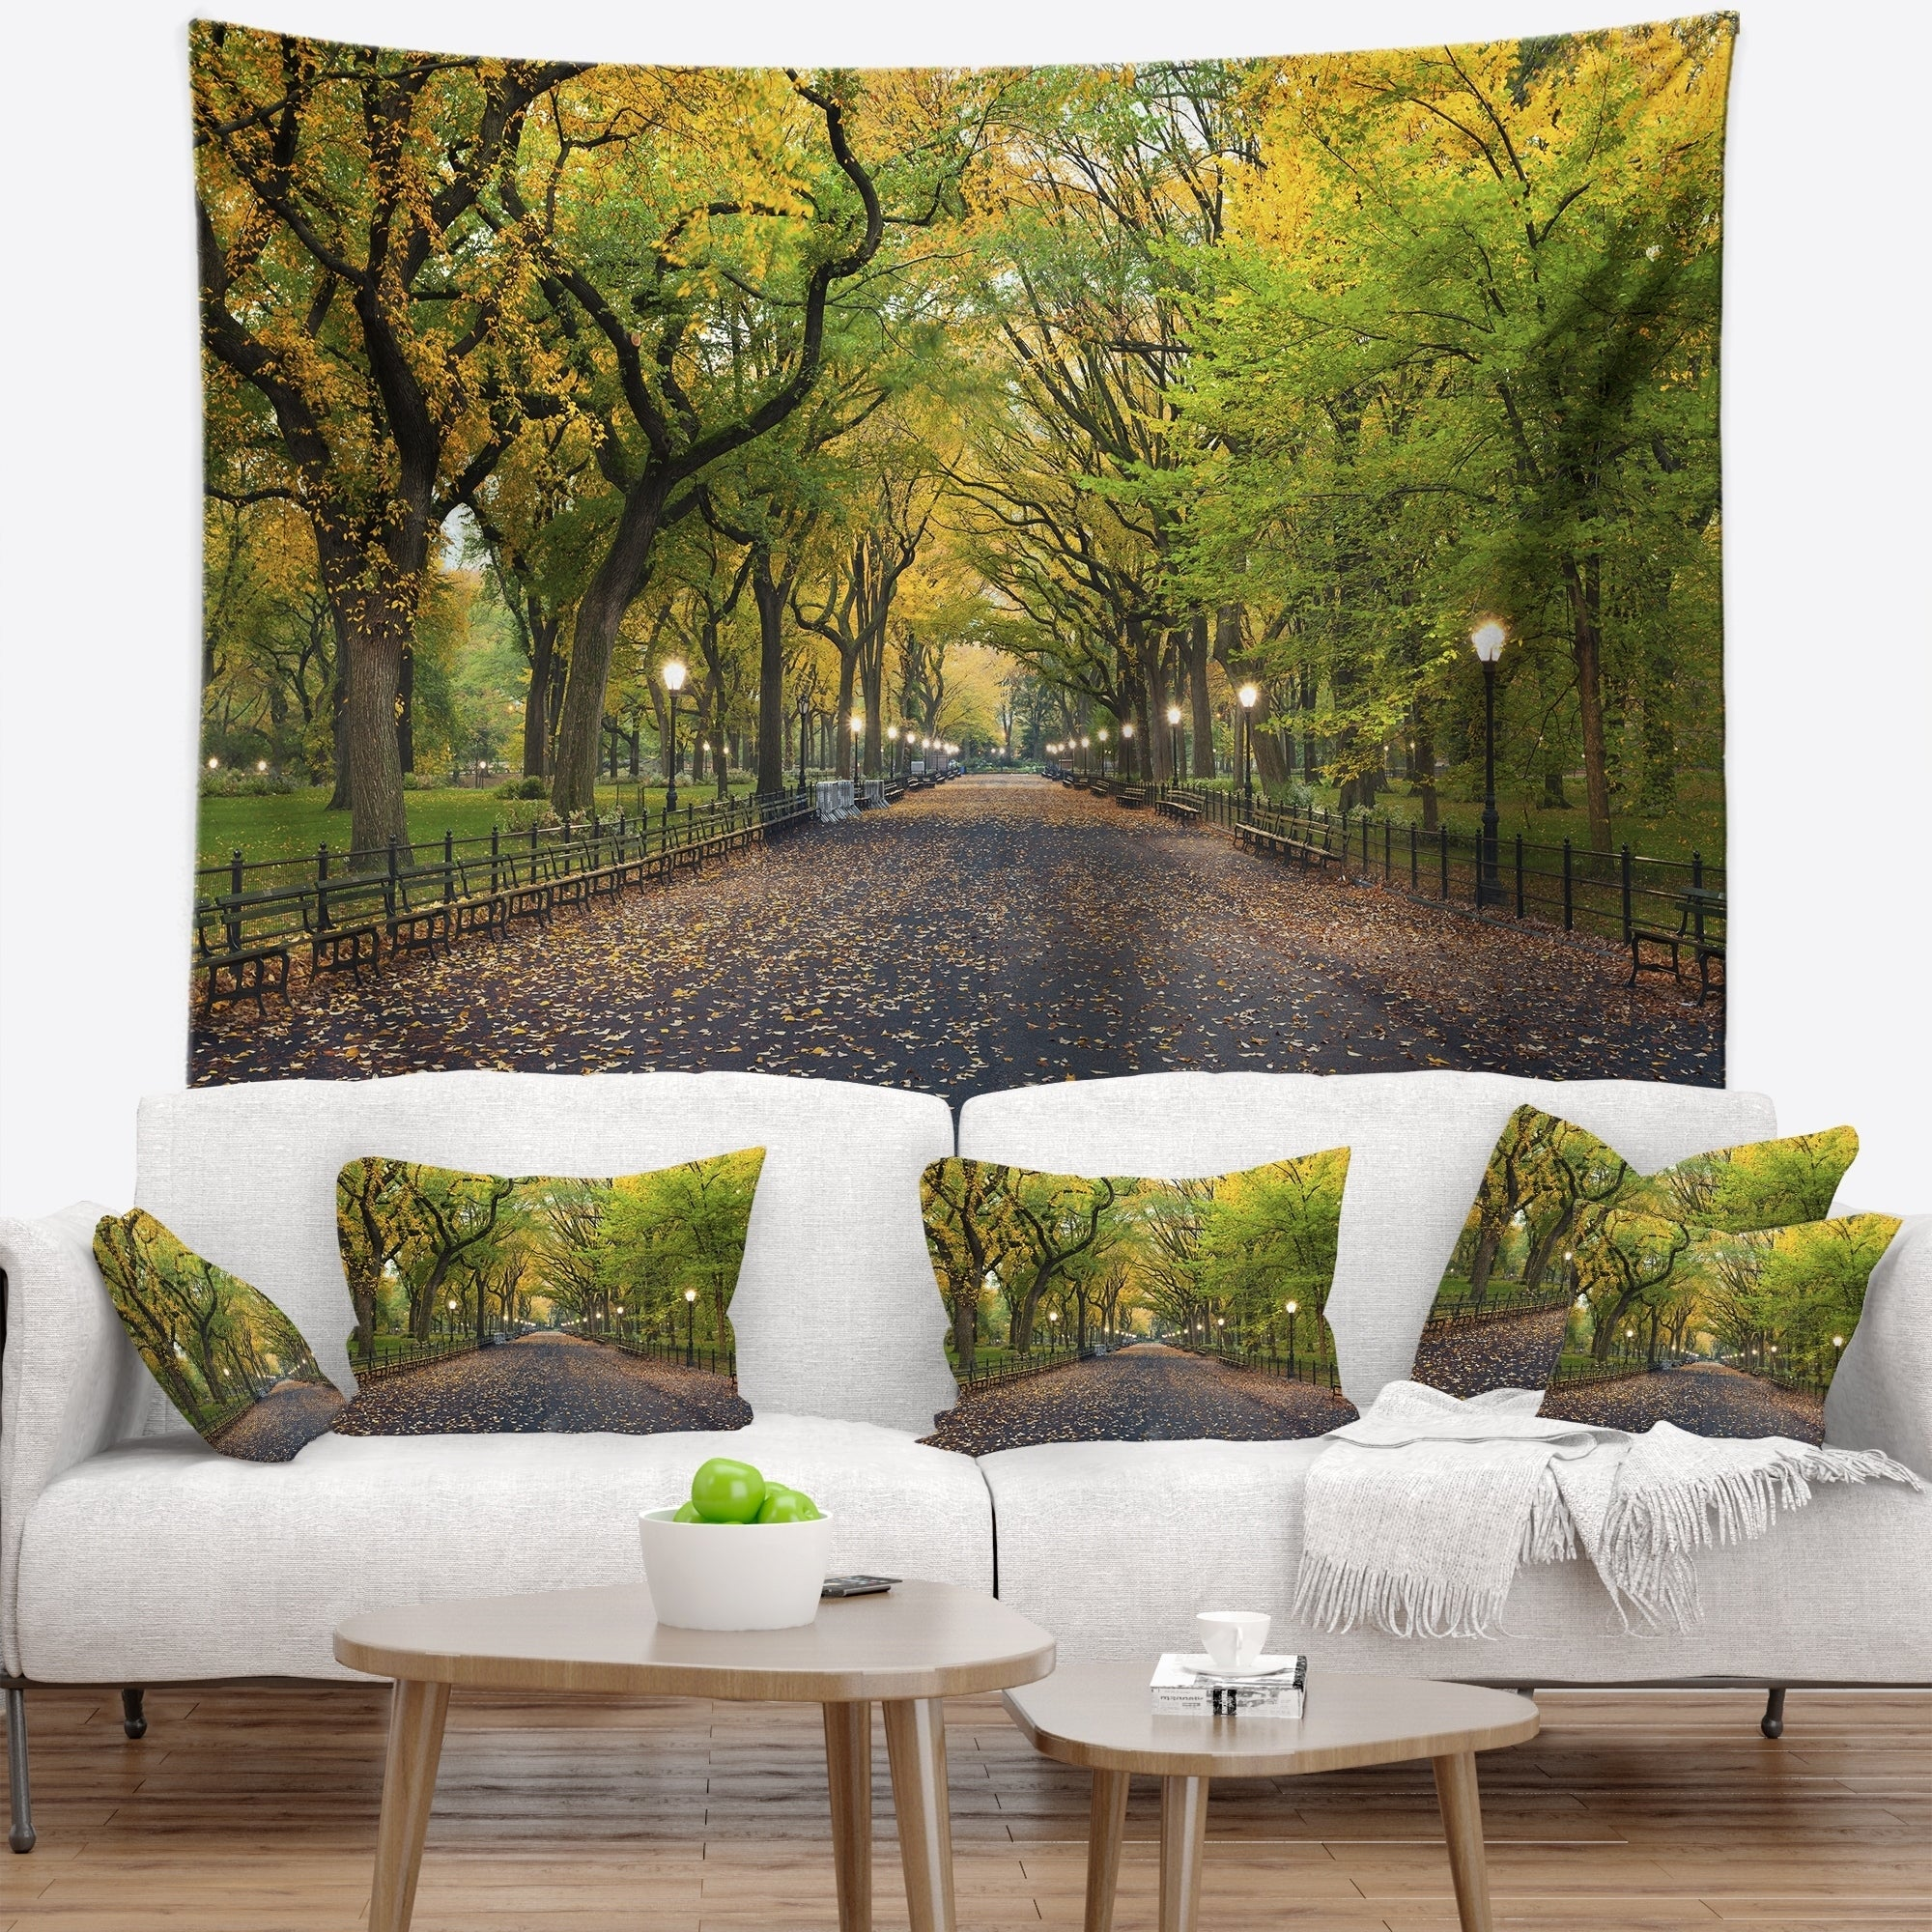 Designart The Mall Area In Central Park Landscape Wall Tapestry Overstock 20886151